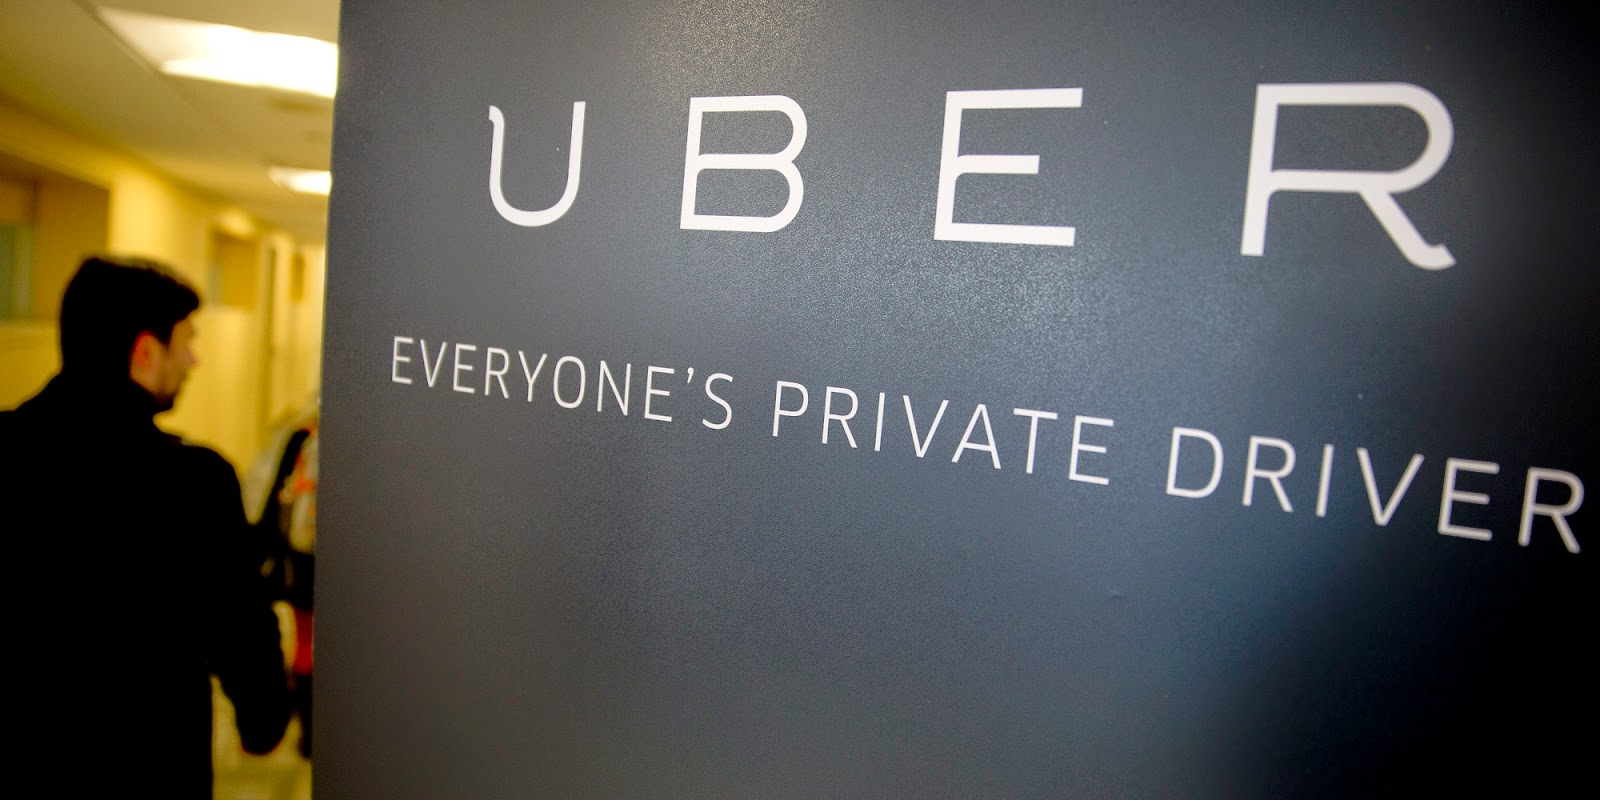 Uber, Everyone's private driver.